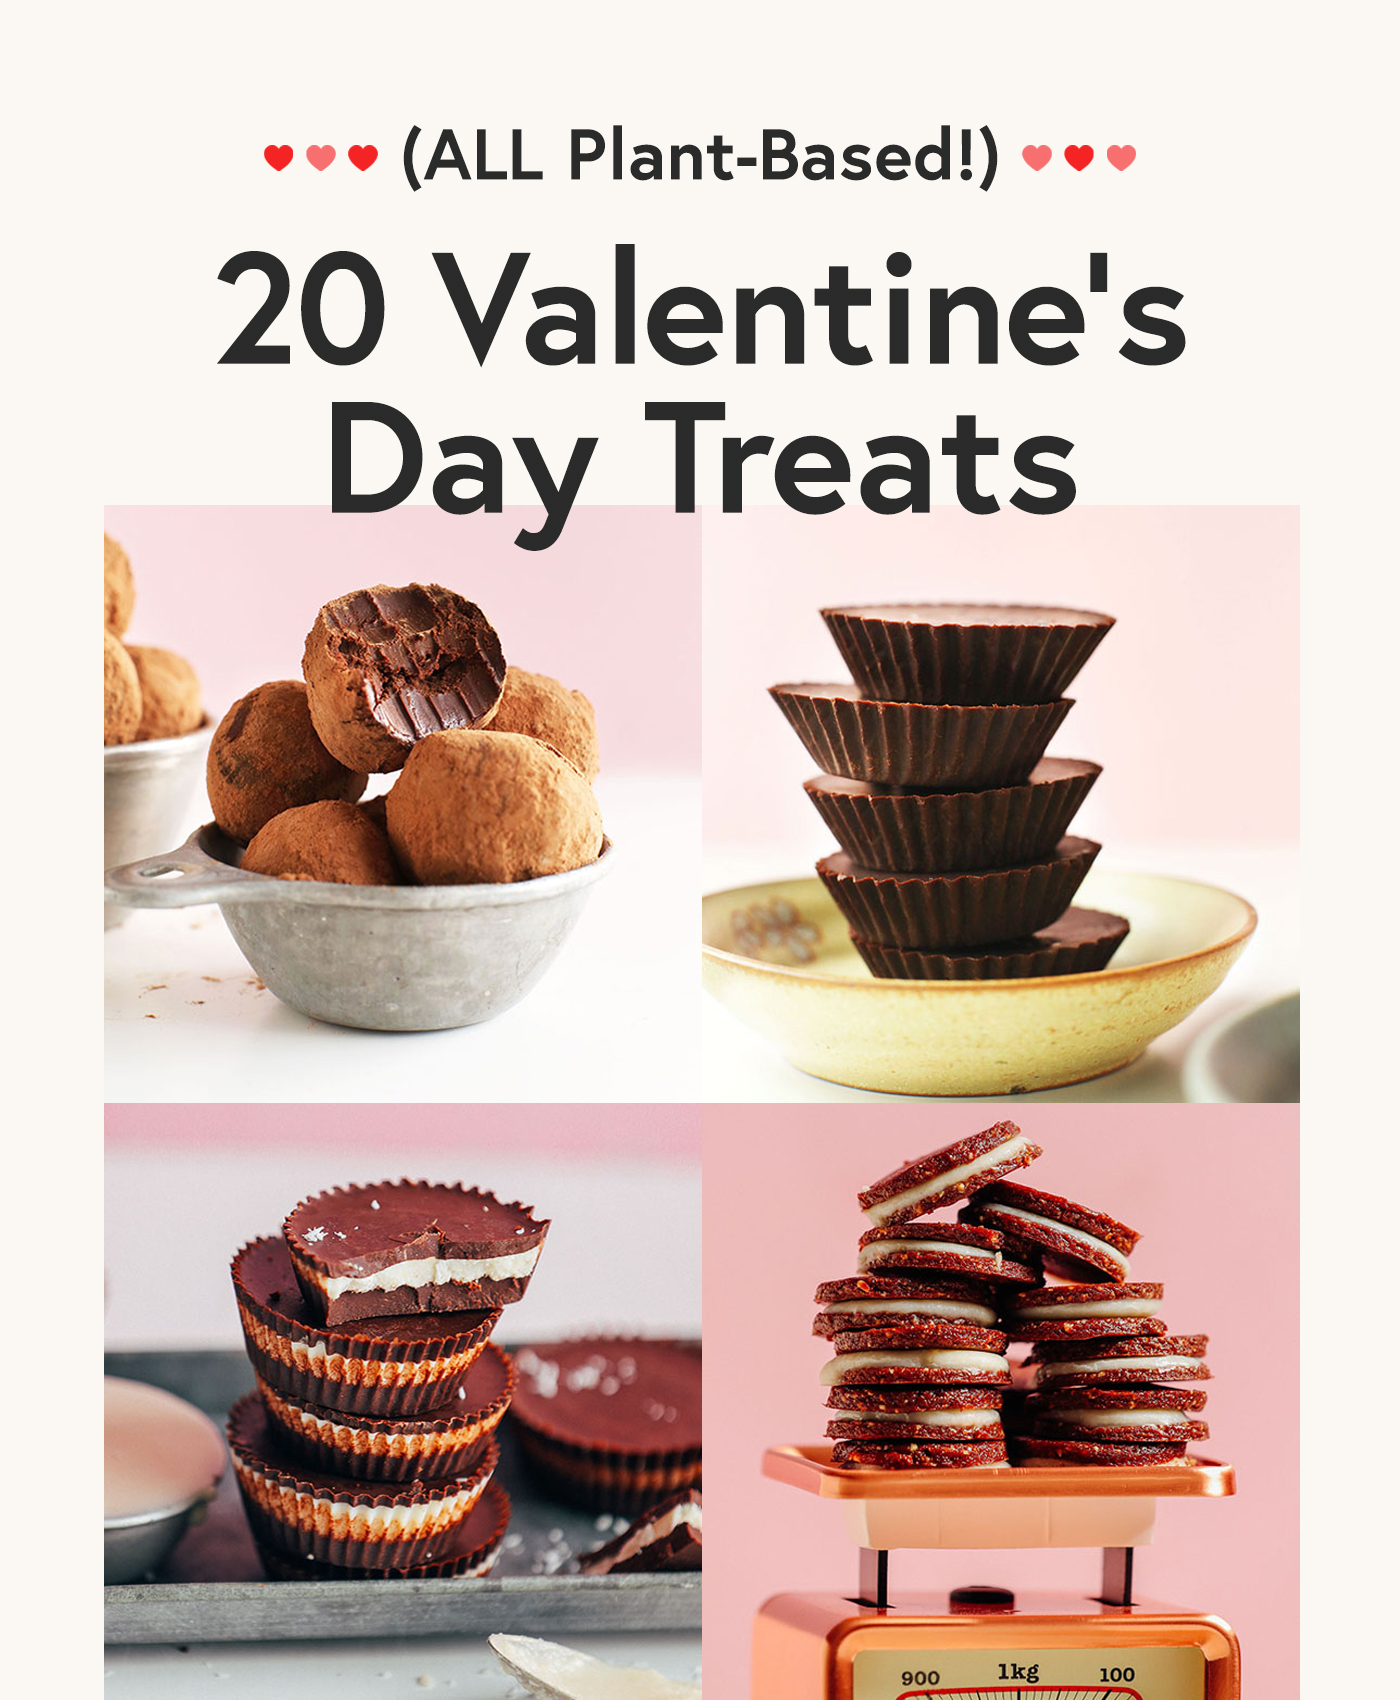 Photos of 4 plant-based chocolate recipes for our round-up of Valentine's Day Treats